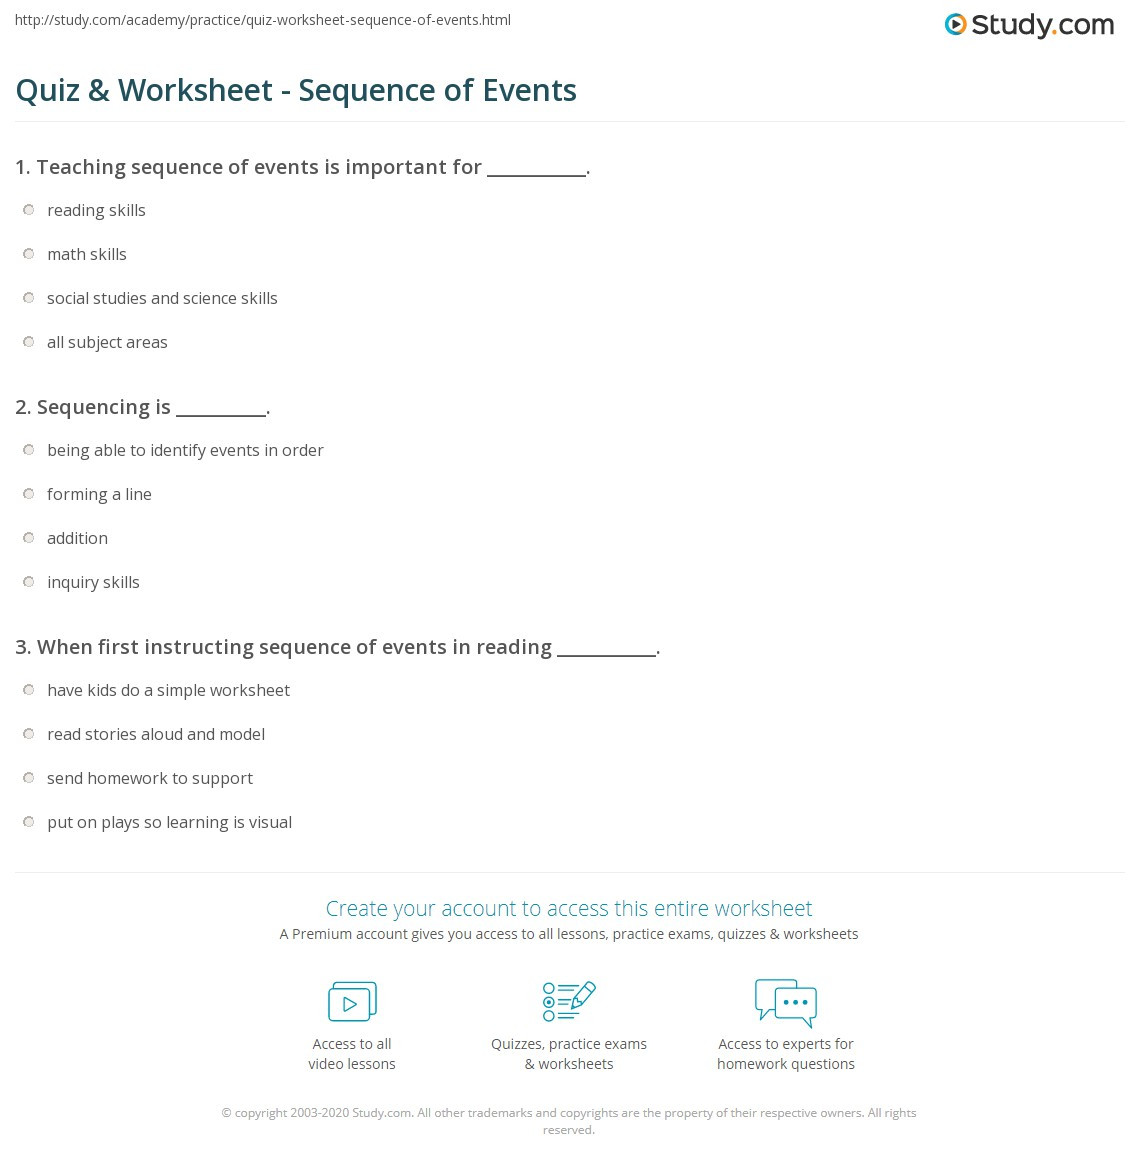 Sequencing Worksheets for Middle School Quiz & Worksheet Sequence Of events